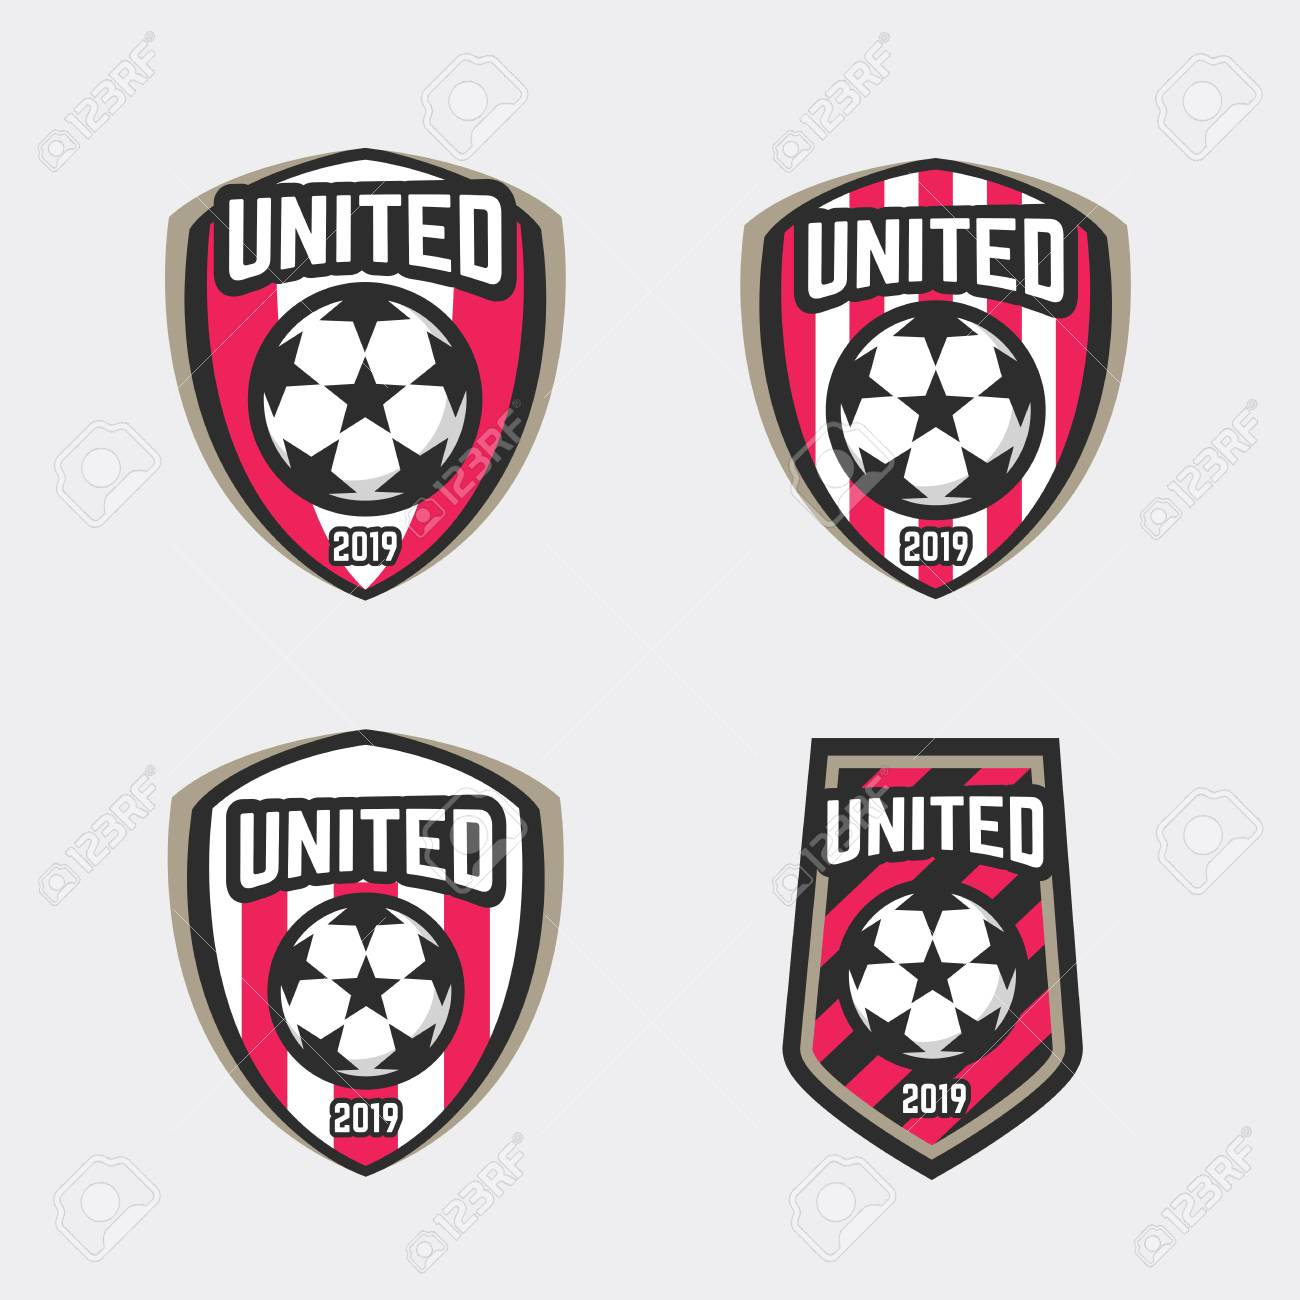 united soccer football badge logo. vector royalty free cliparts, vectors,  and stock illustration. image 89175372.  123rf